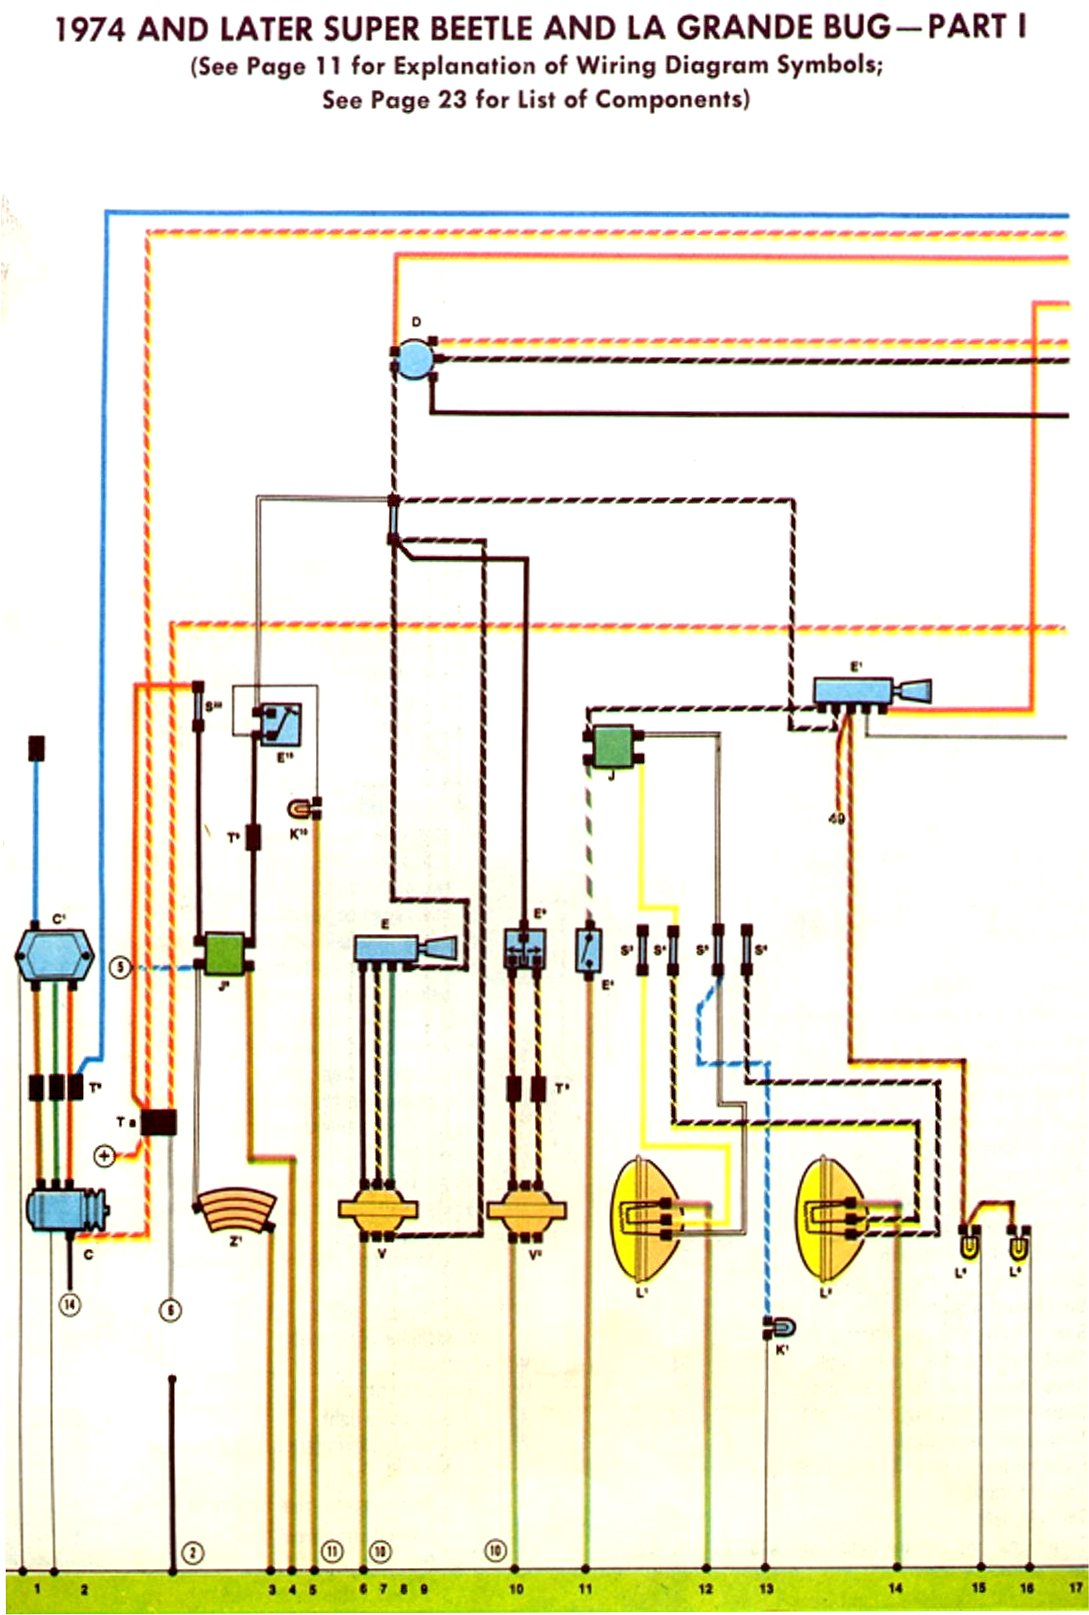 74 beetle fuse box wiring diagram delorean fuse box wiring diagram thesamba.com :: beetle - late model/super - 1968-up - view ... #14